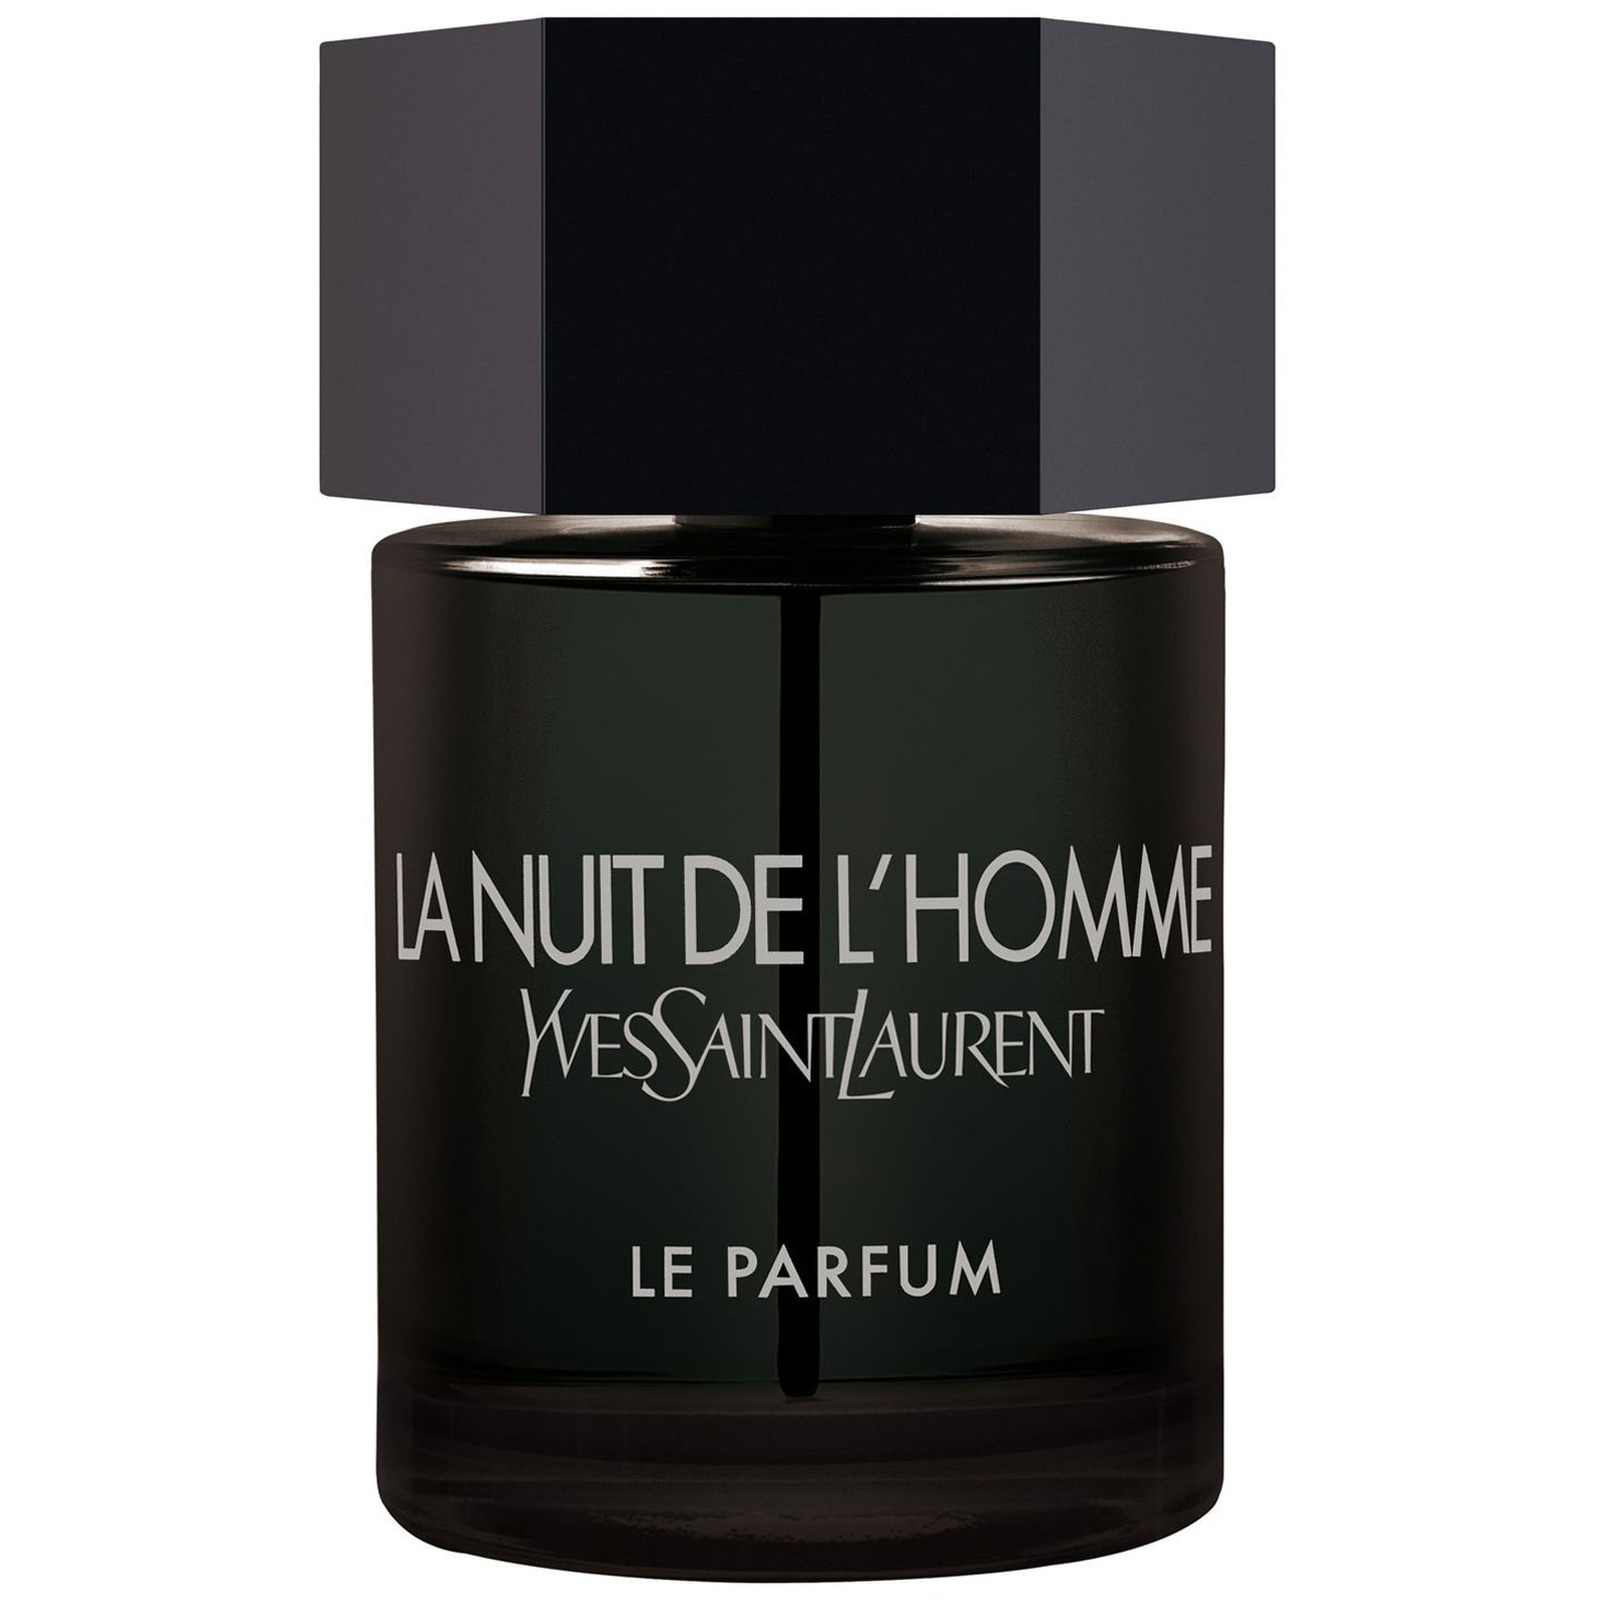 Yves Saint Laurent La Nuit De L'Homme Le Parfum Spray 100ml